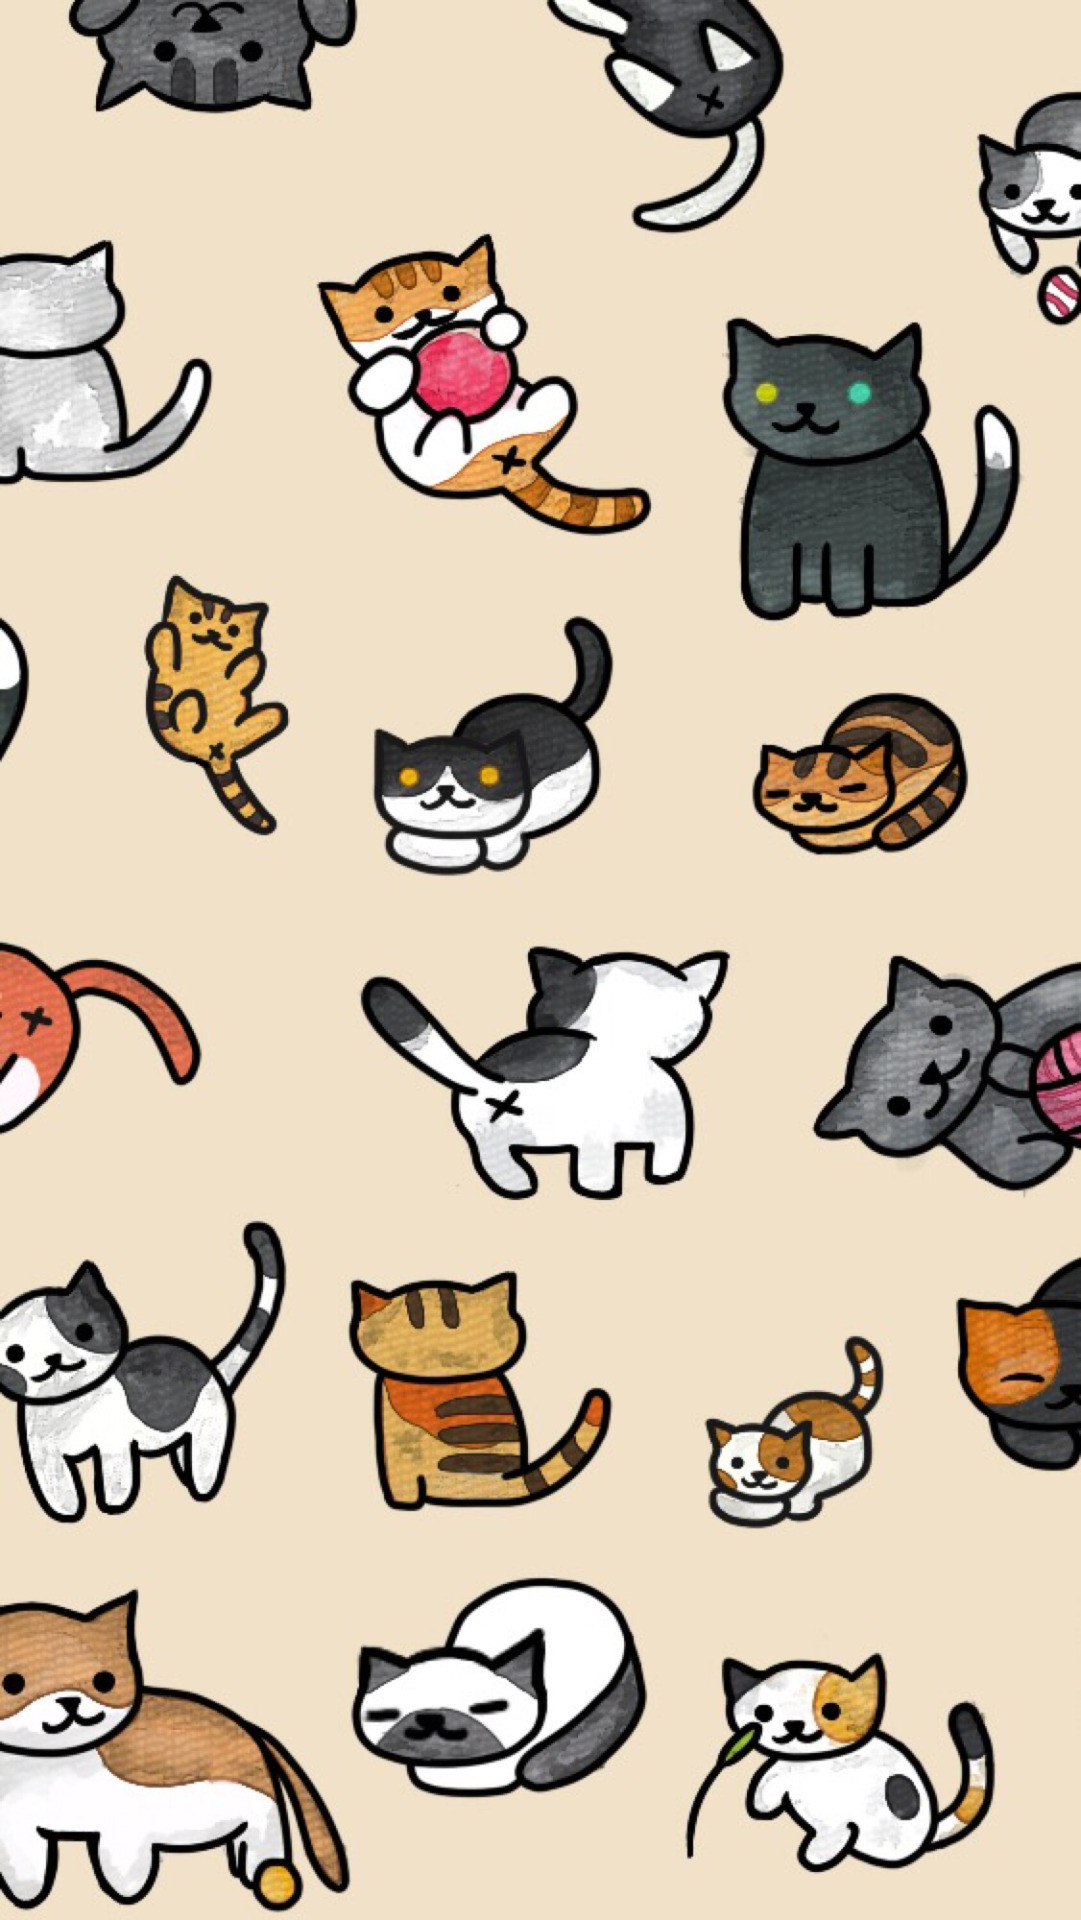 Cute Kitty Wallpapers Download Pusheen The Cat Wallpapers 44 Images